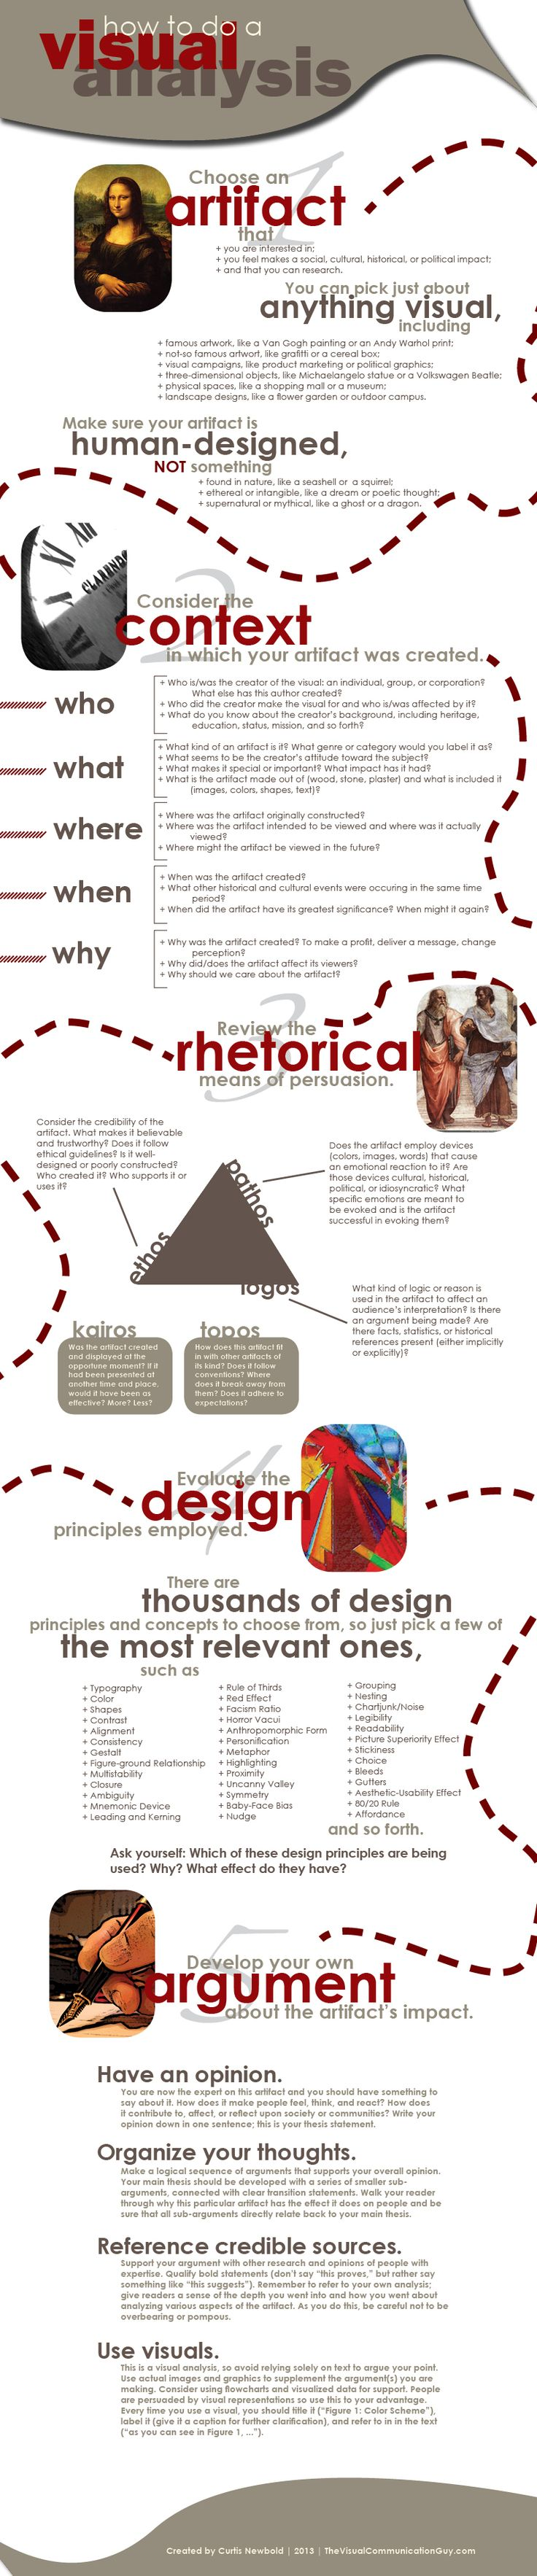 best images about ads for rhetorical analysis how to do a visual analysis